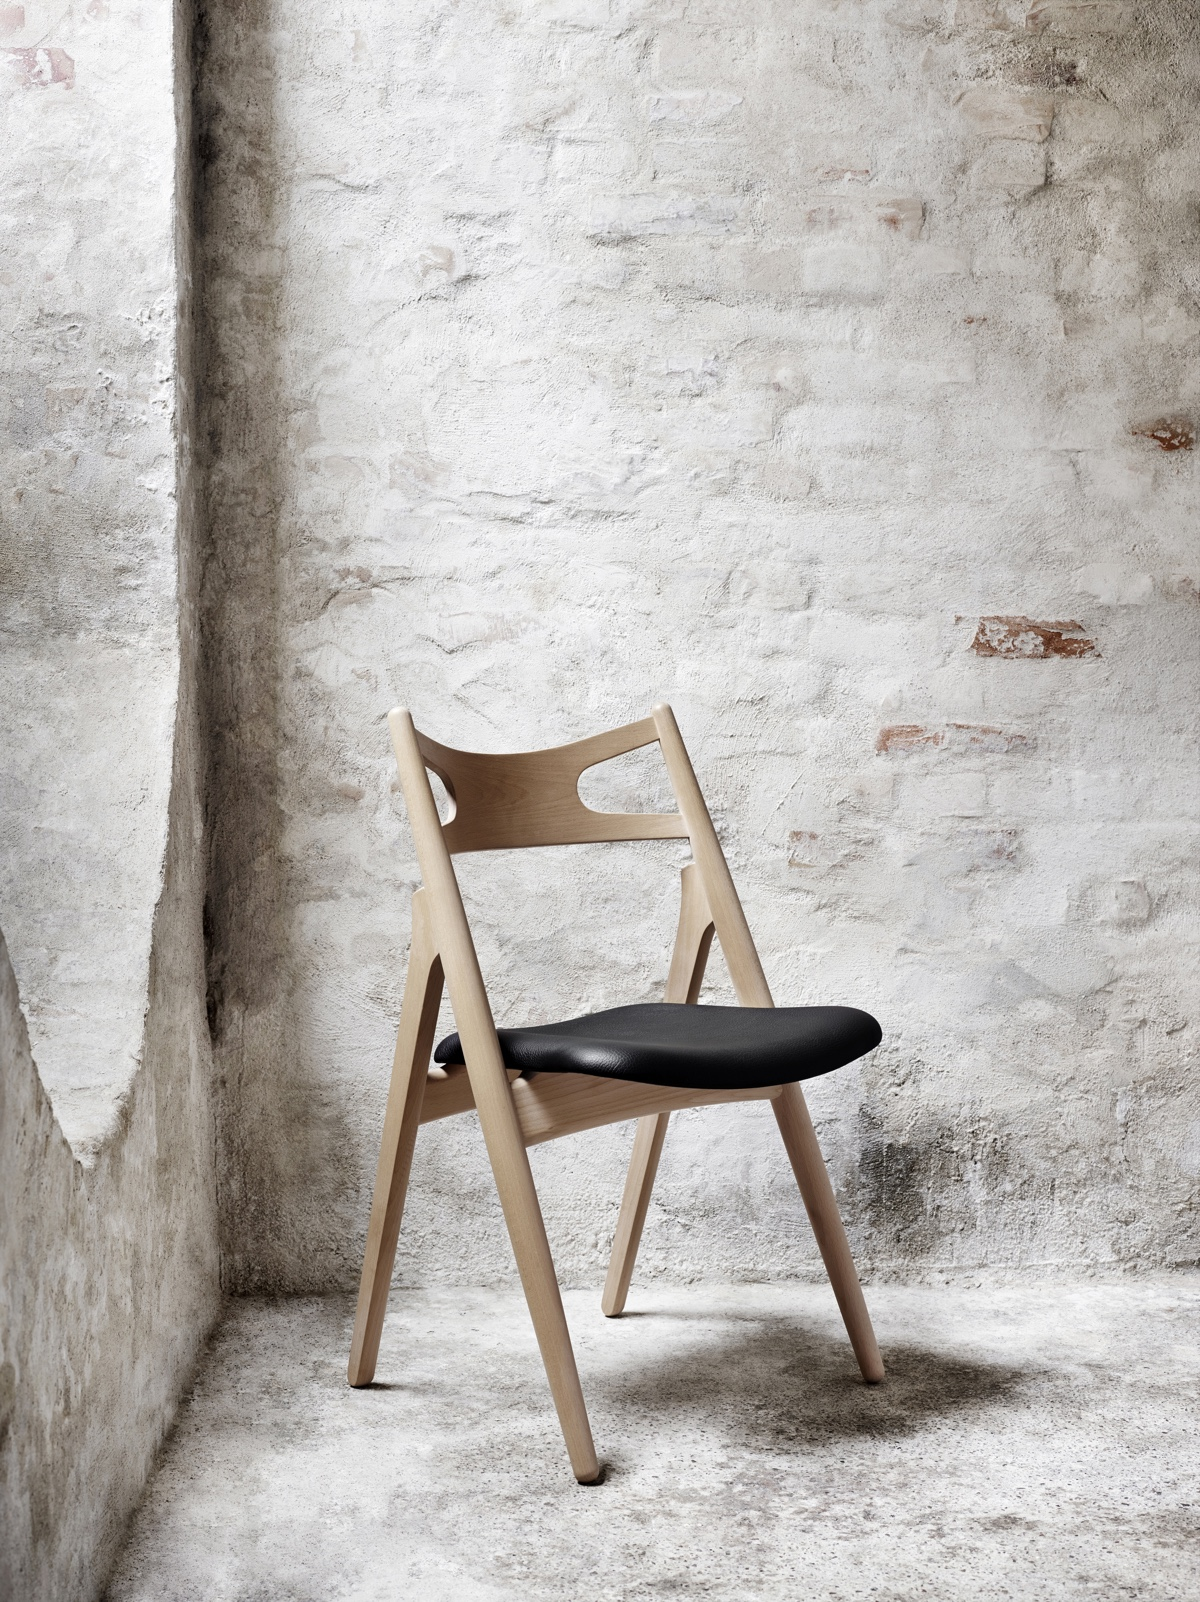 CH29 Sawbuck Chair designed in 1952 by Hans J. Wegner.